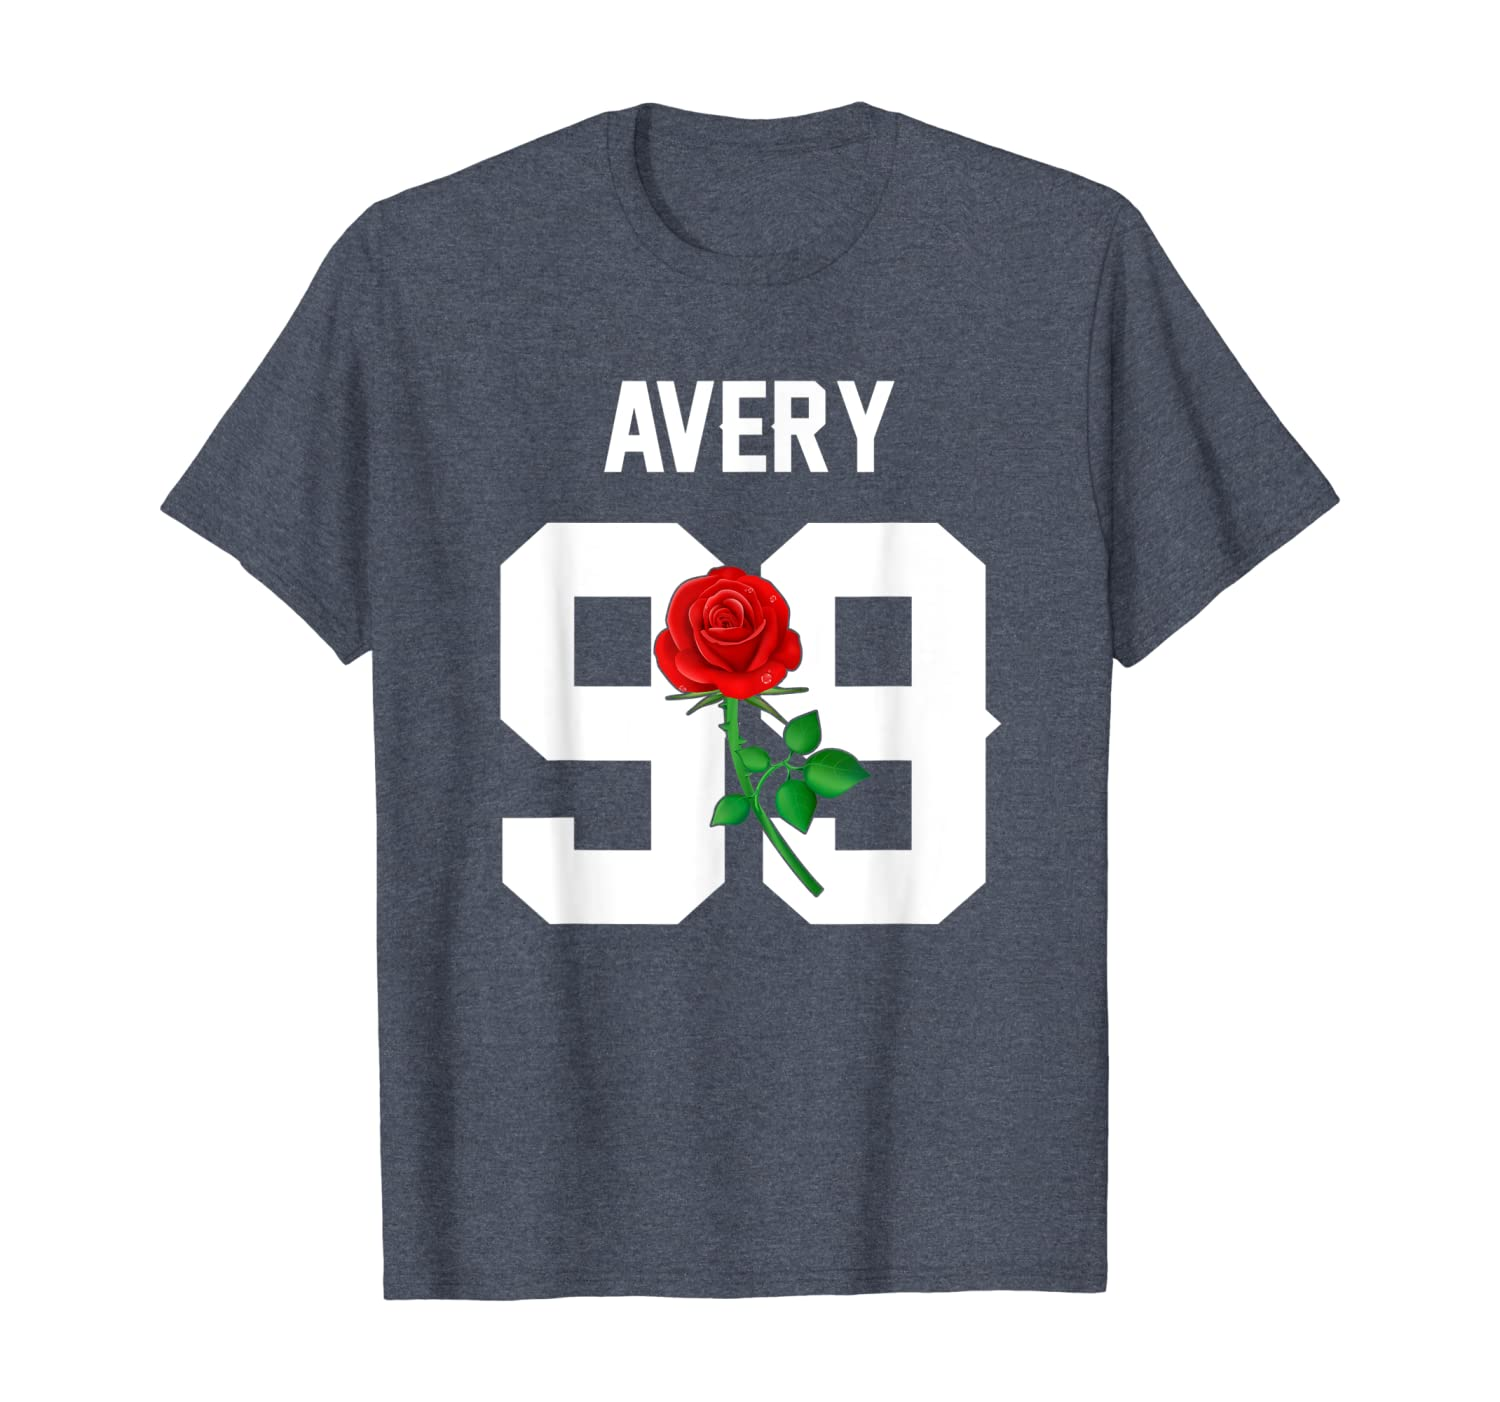 Why Merchandise We Don't Red Rose Jack Avery For Girls T-Shirt-axz